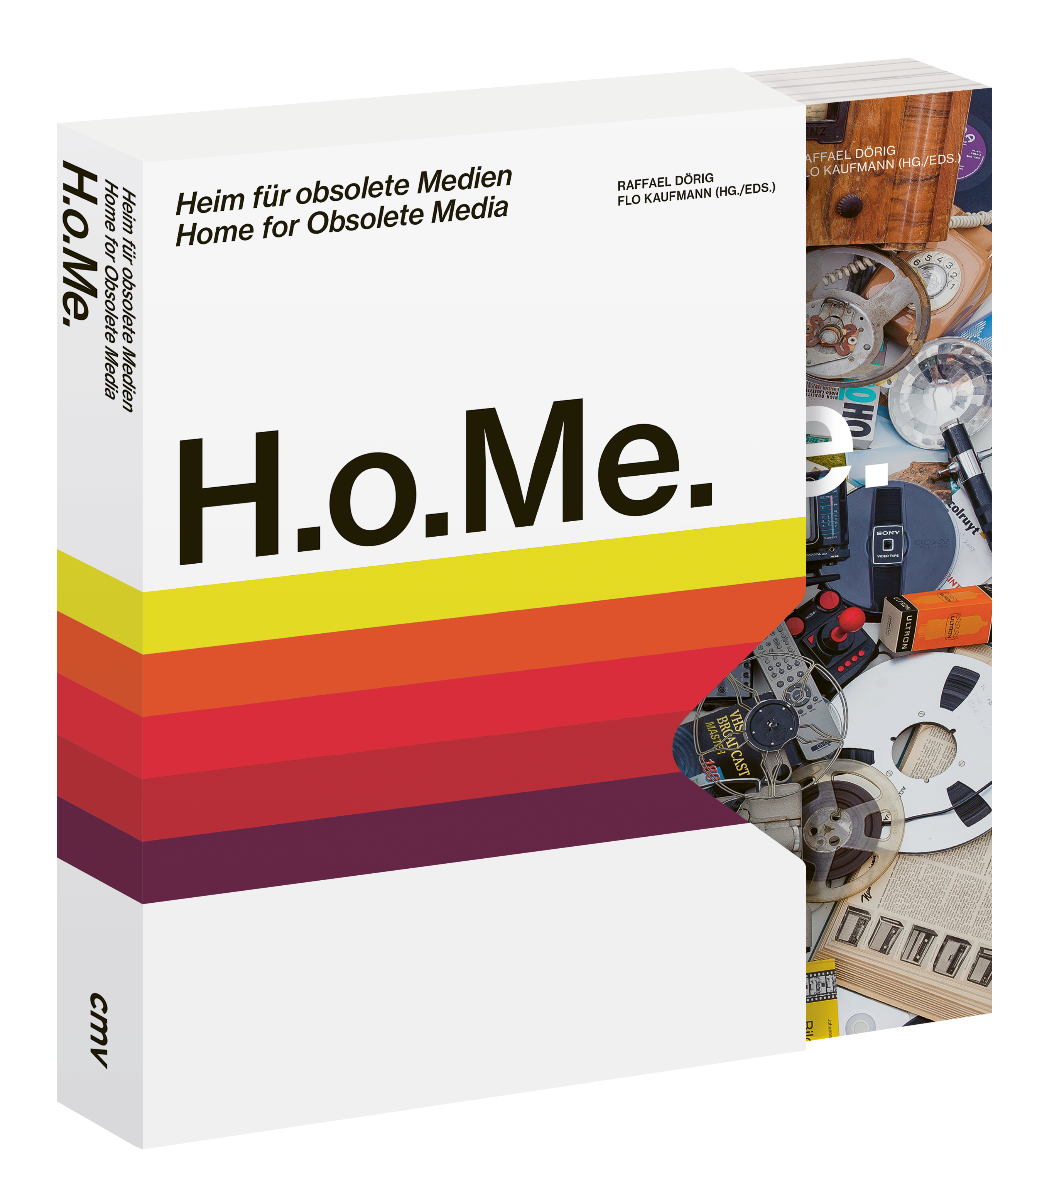 H.o.Me. - Heim für obsolete Medien / H.o.Me. - Home for obsolete media